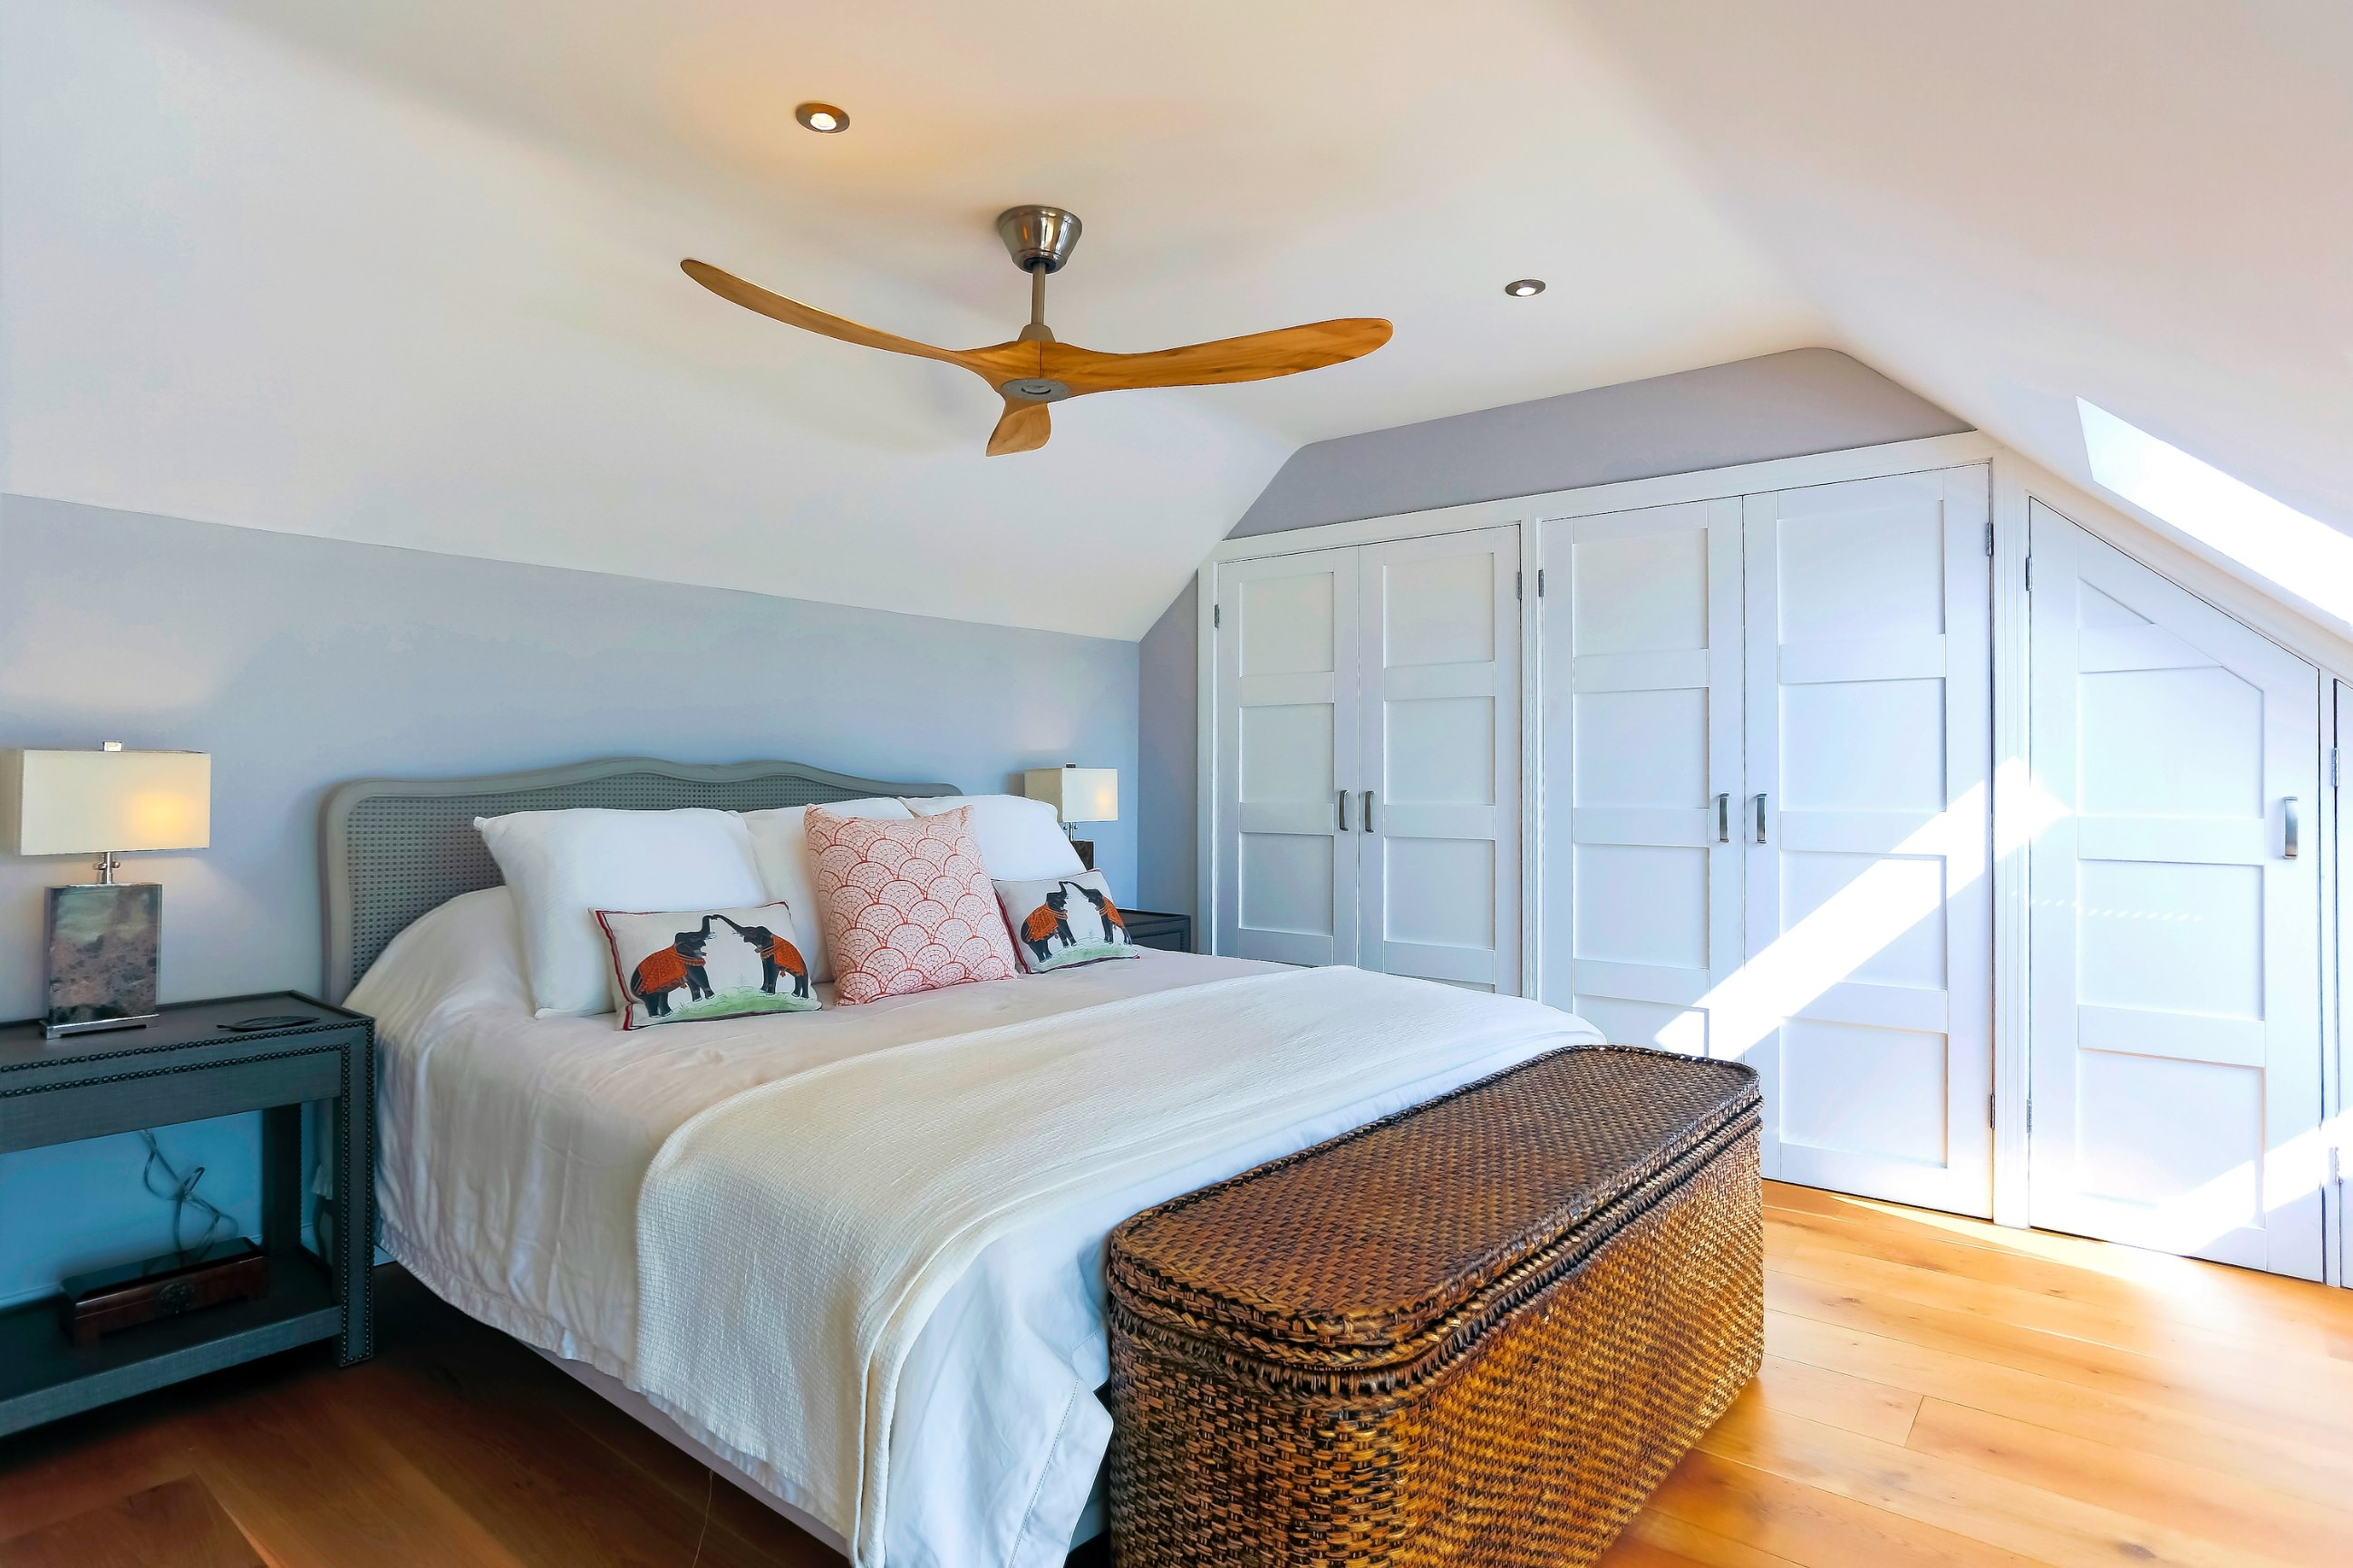 Designer ceiling fans buy the best brands henley fan aloadofball Images